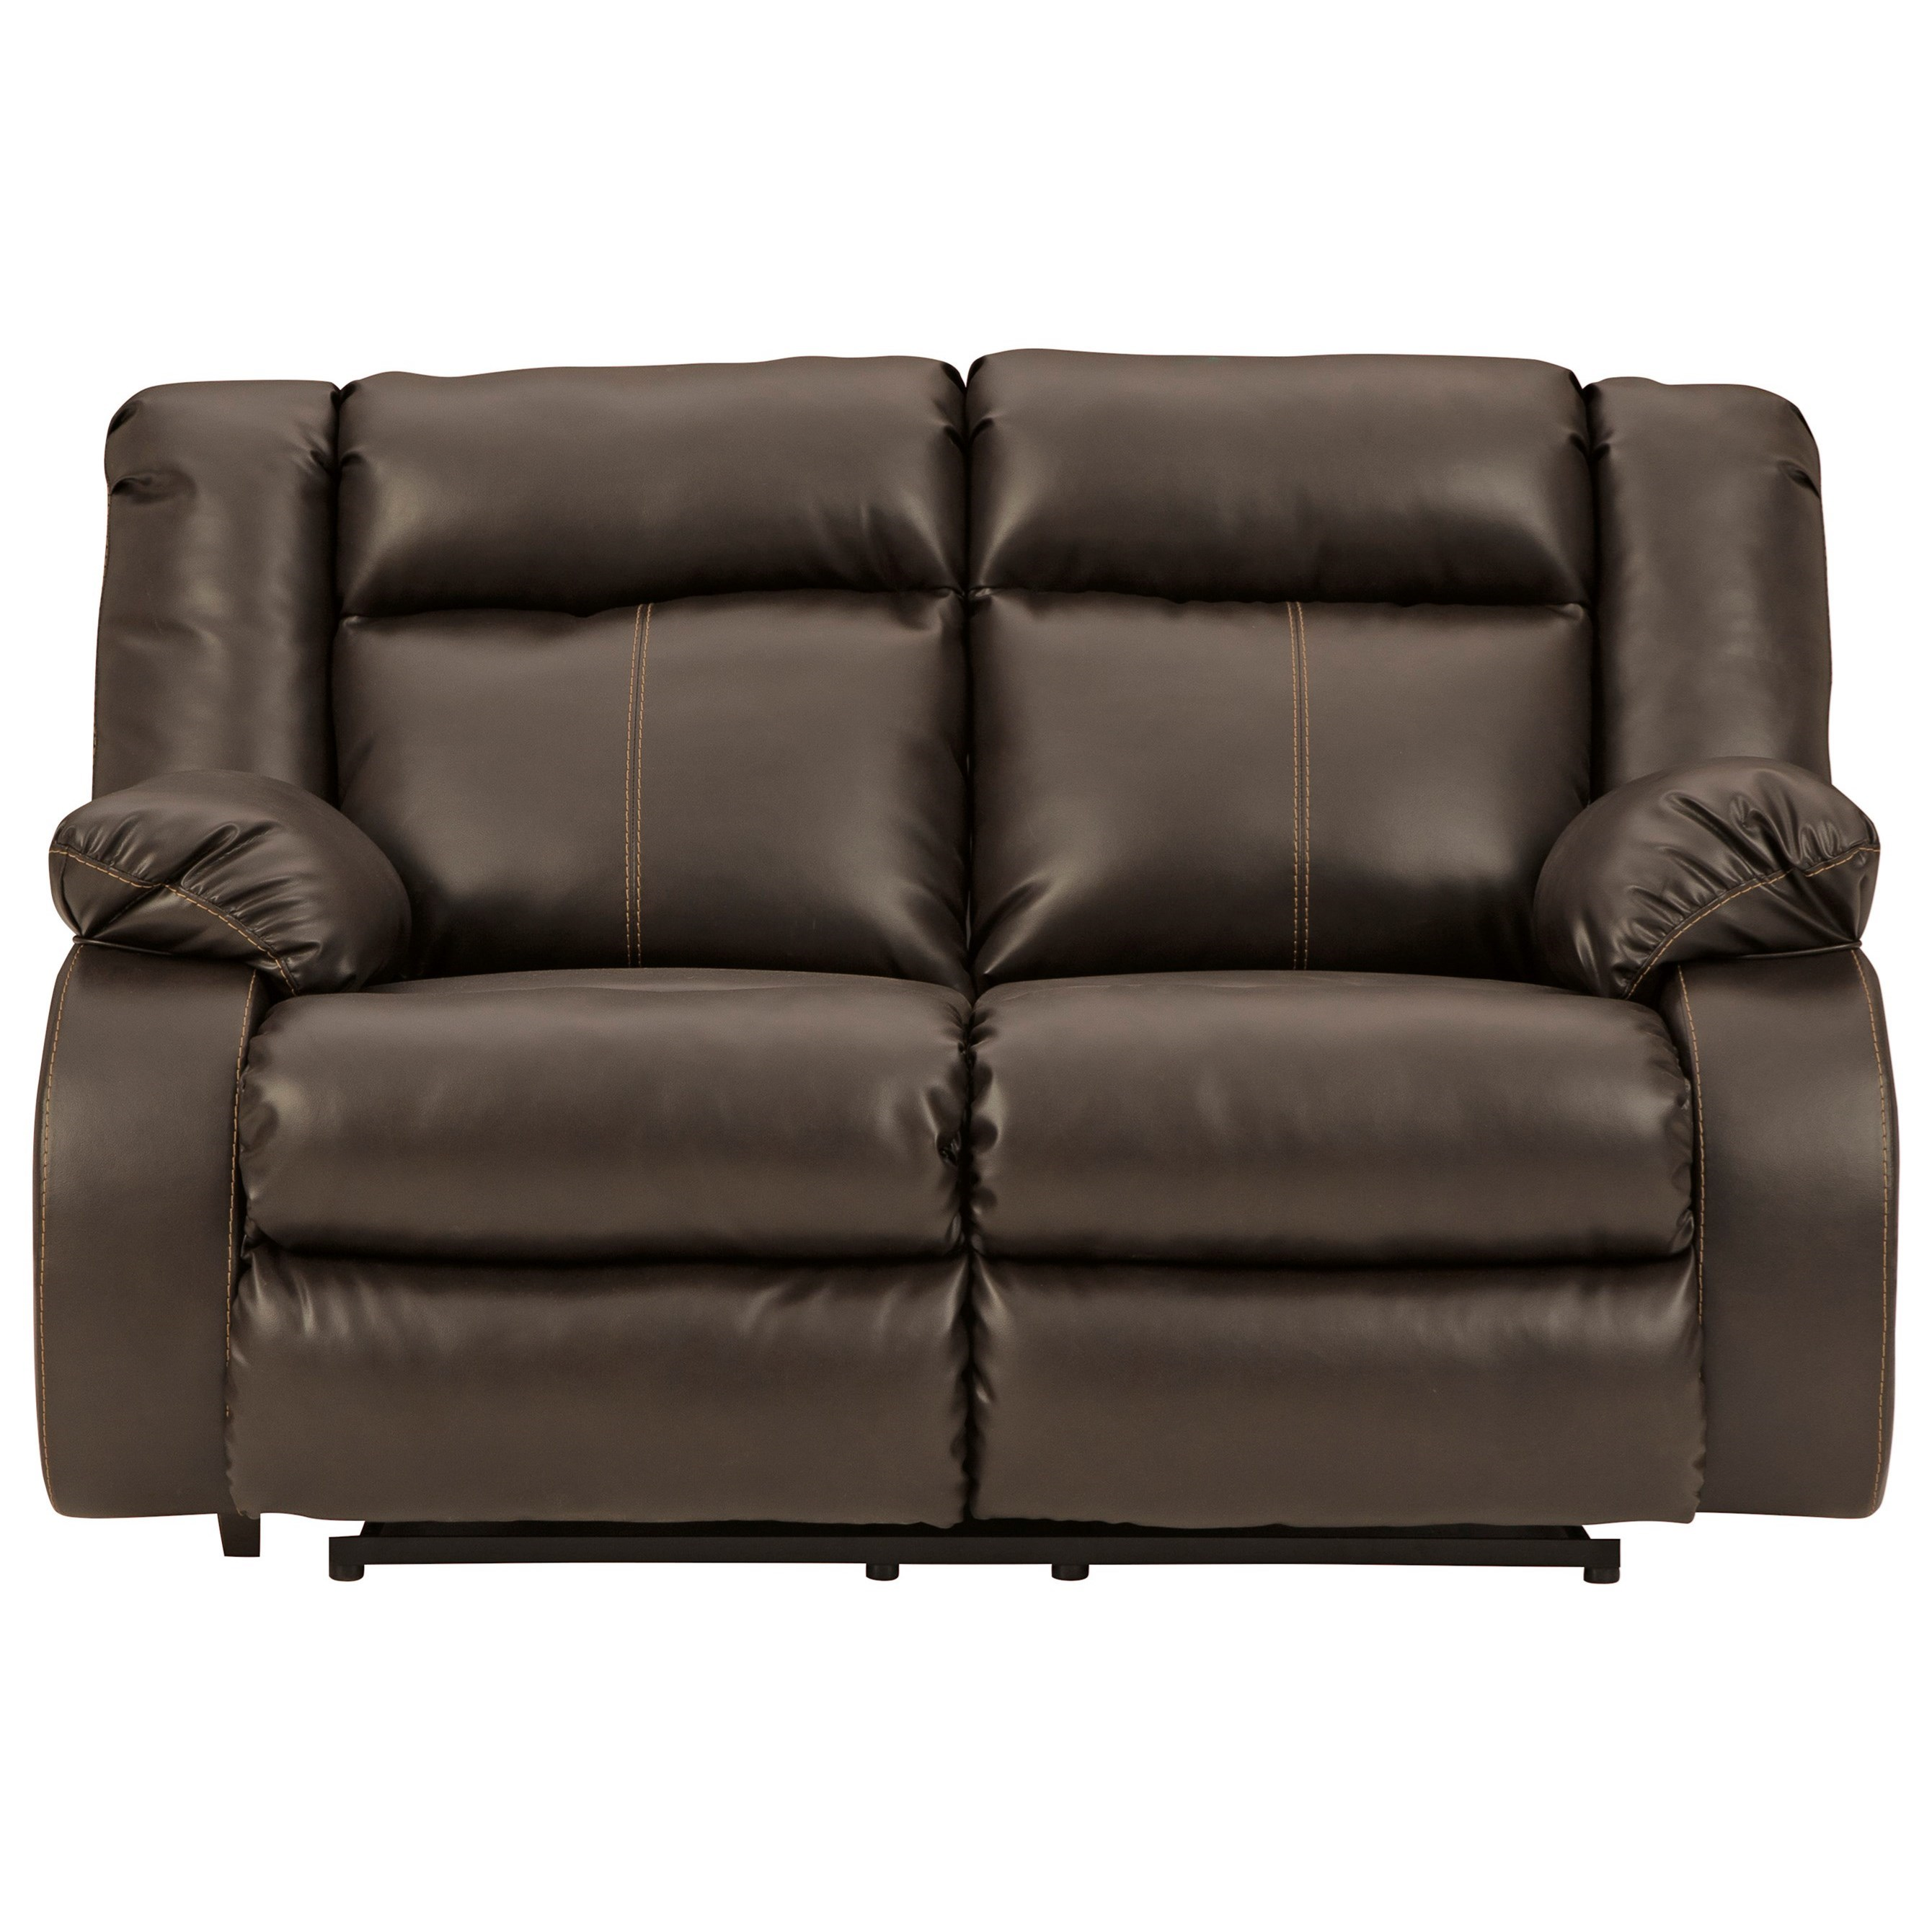 Denoron Power Reclining Loveseat by Signature Design by Ashley at Sparks HomeStore